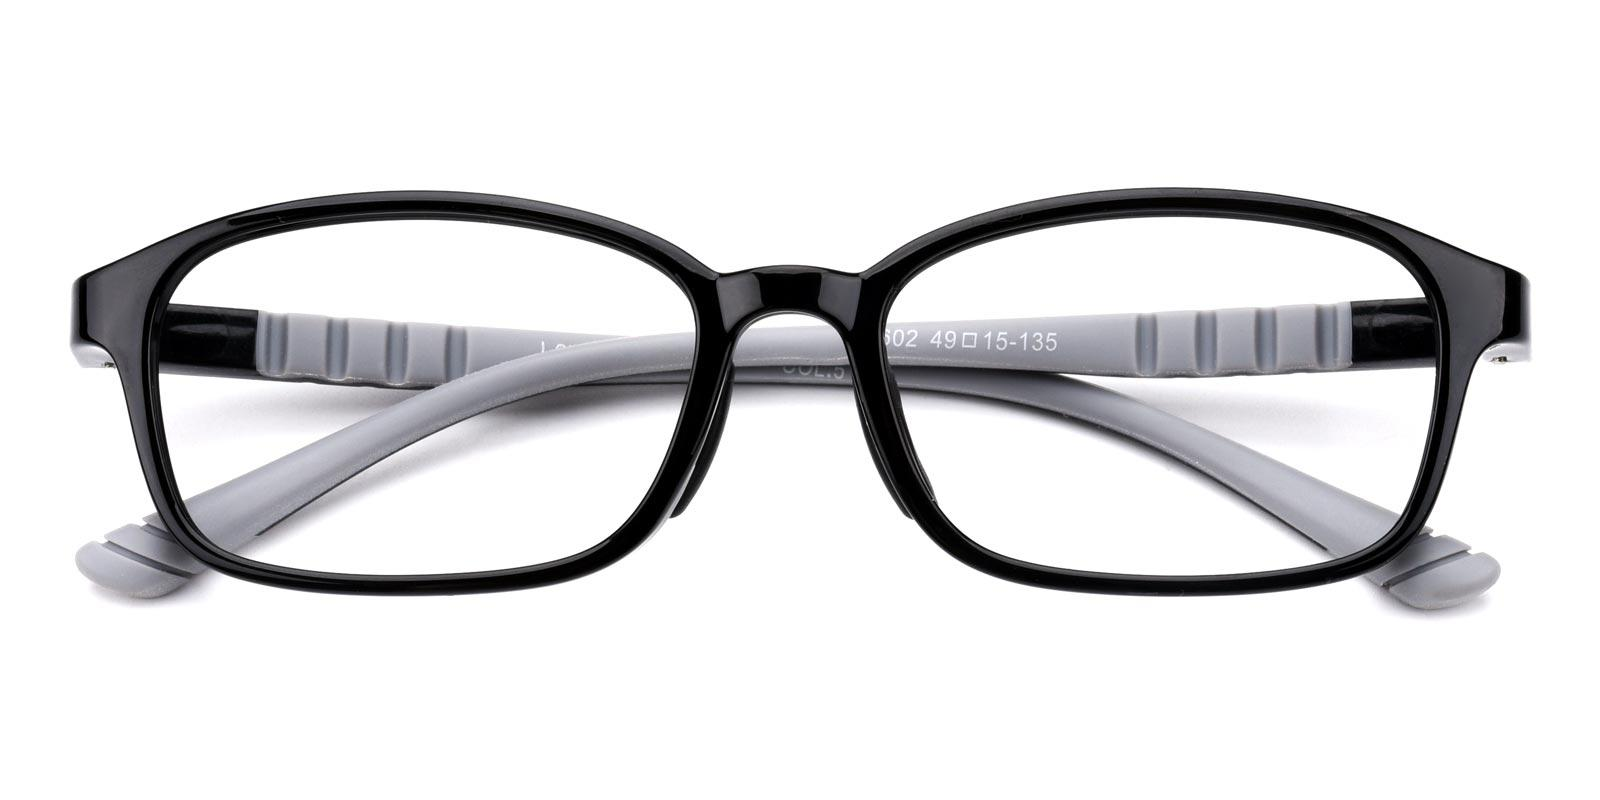 Adward-Black-Rectangle-Combination-Eyeglasses-detail